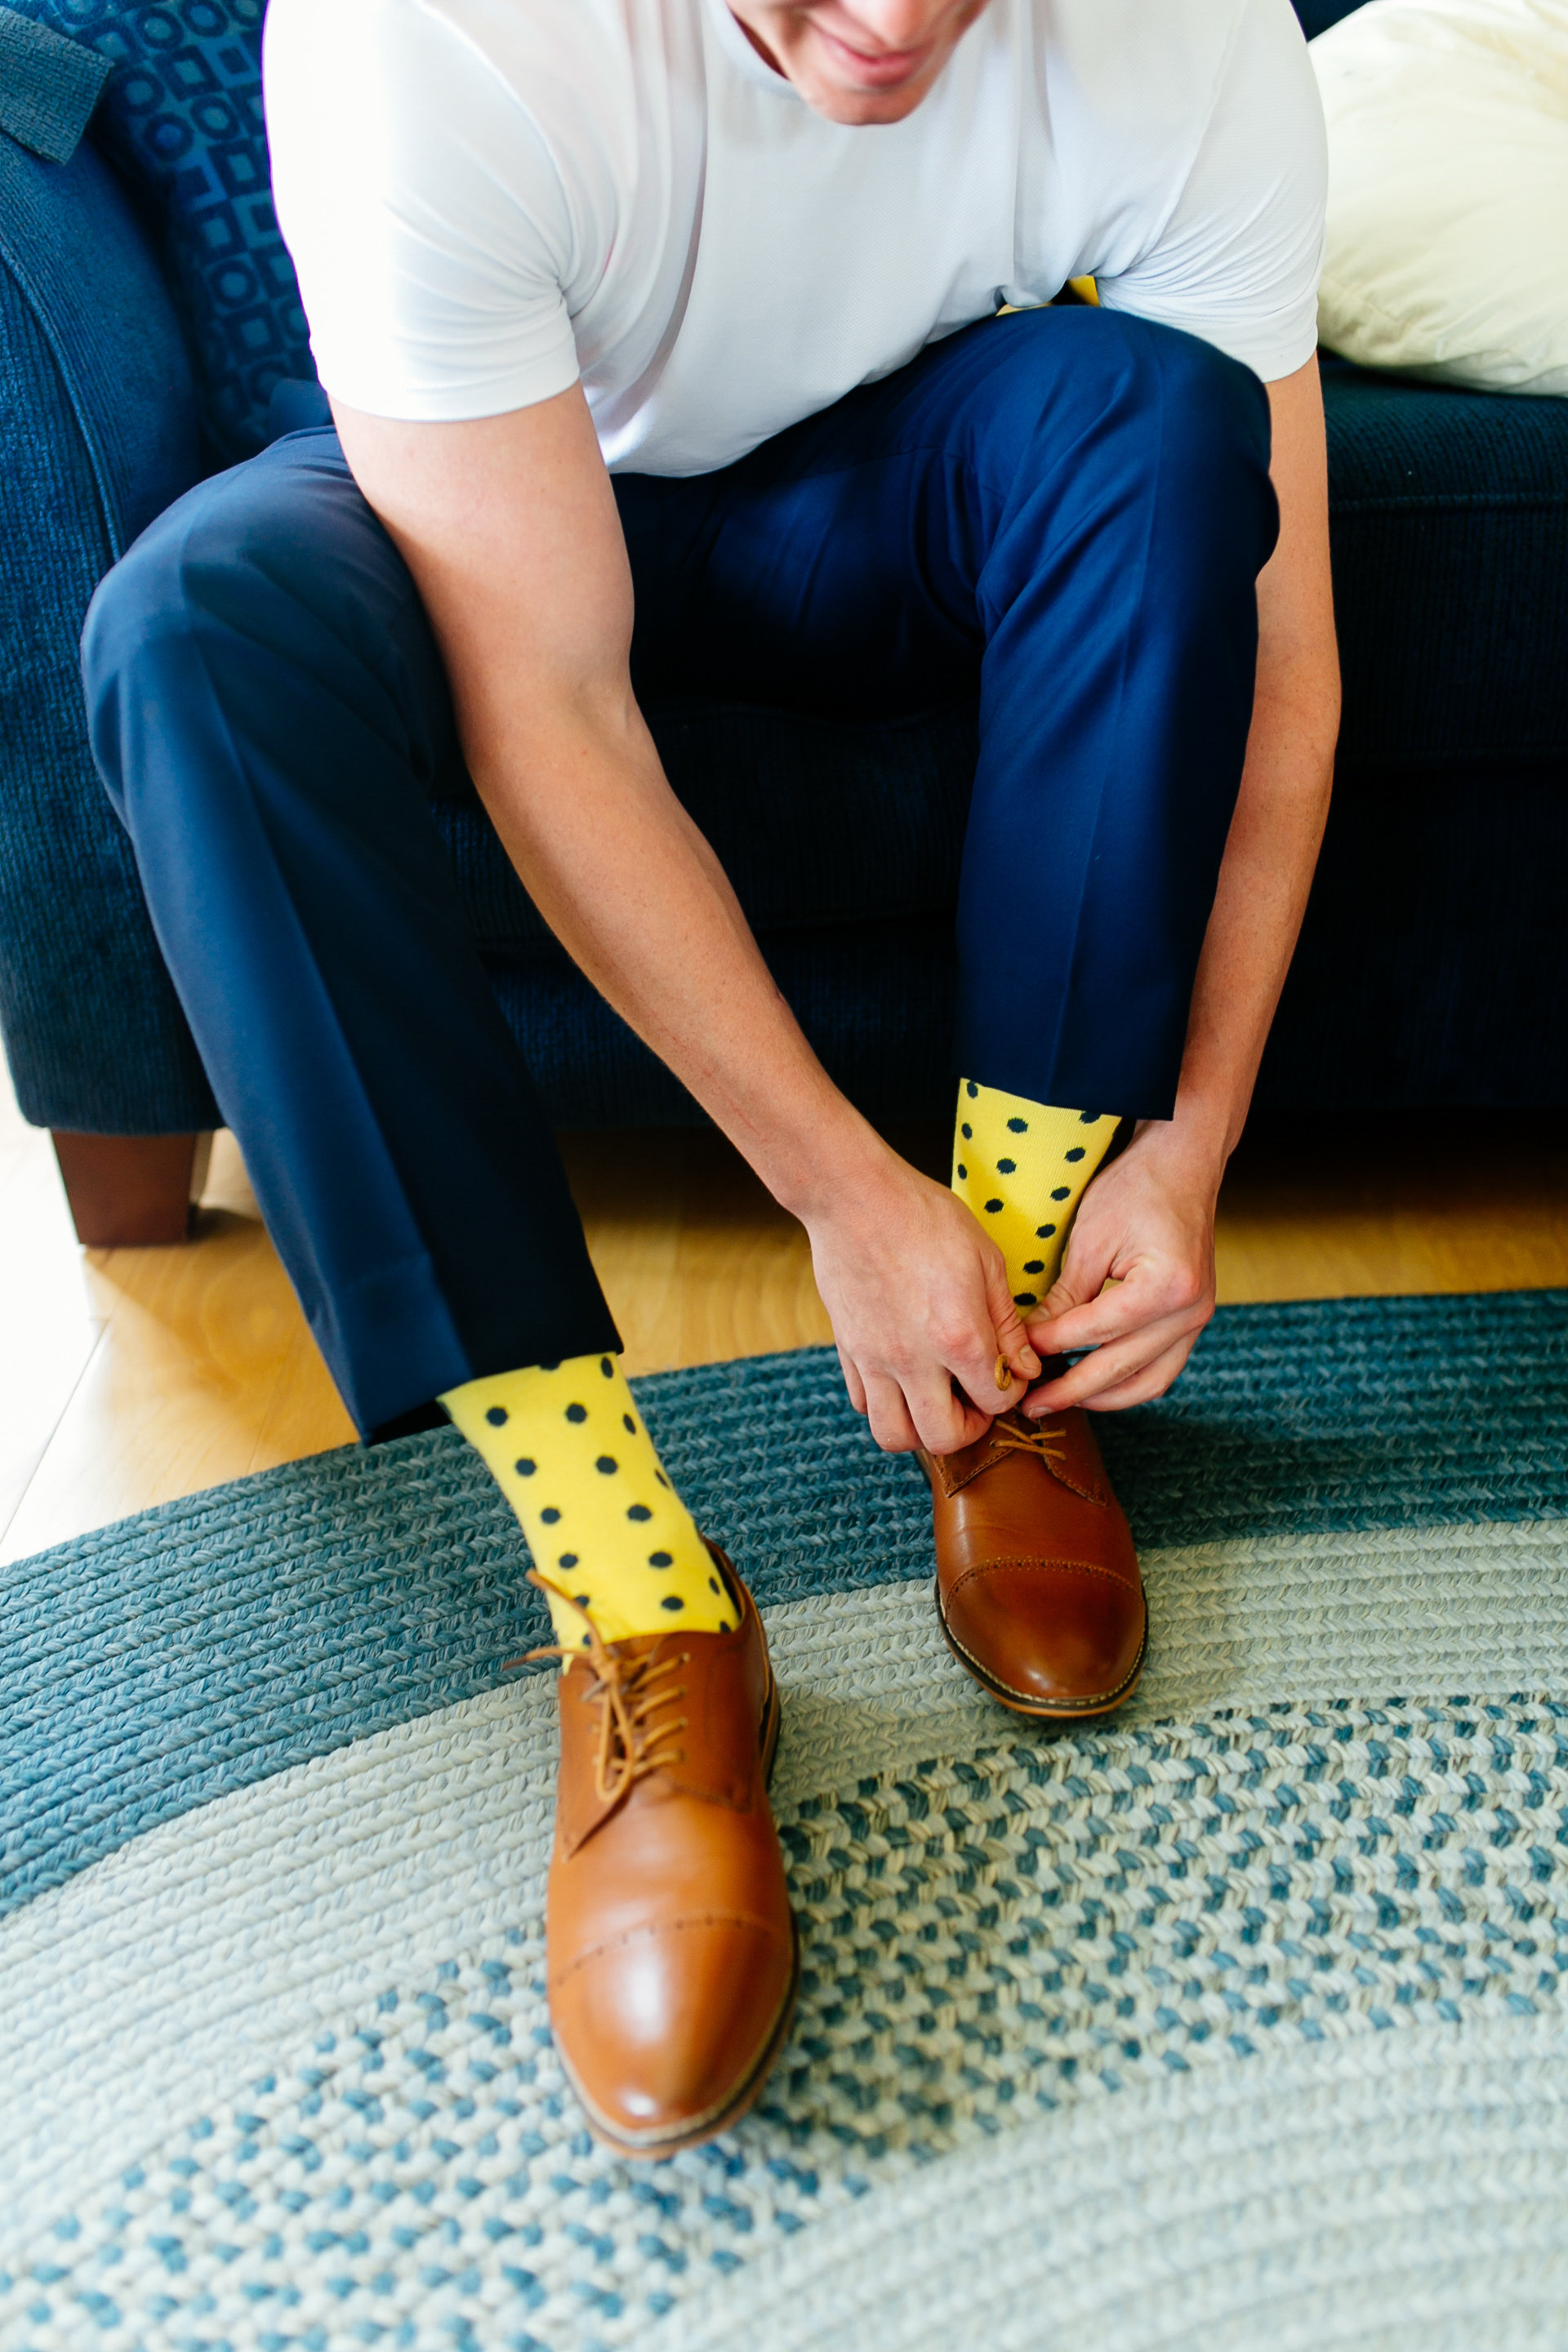 How to Capture Your Getting Ready Photos | Leah Fontaine Photography | Getting ready photos with groom putting on shoes with yellow polkadot socks